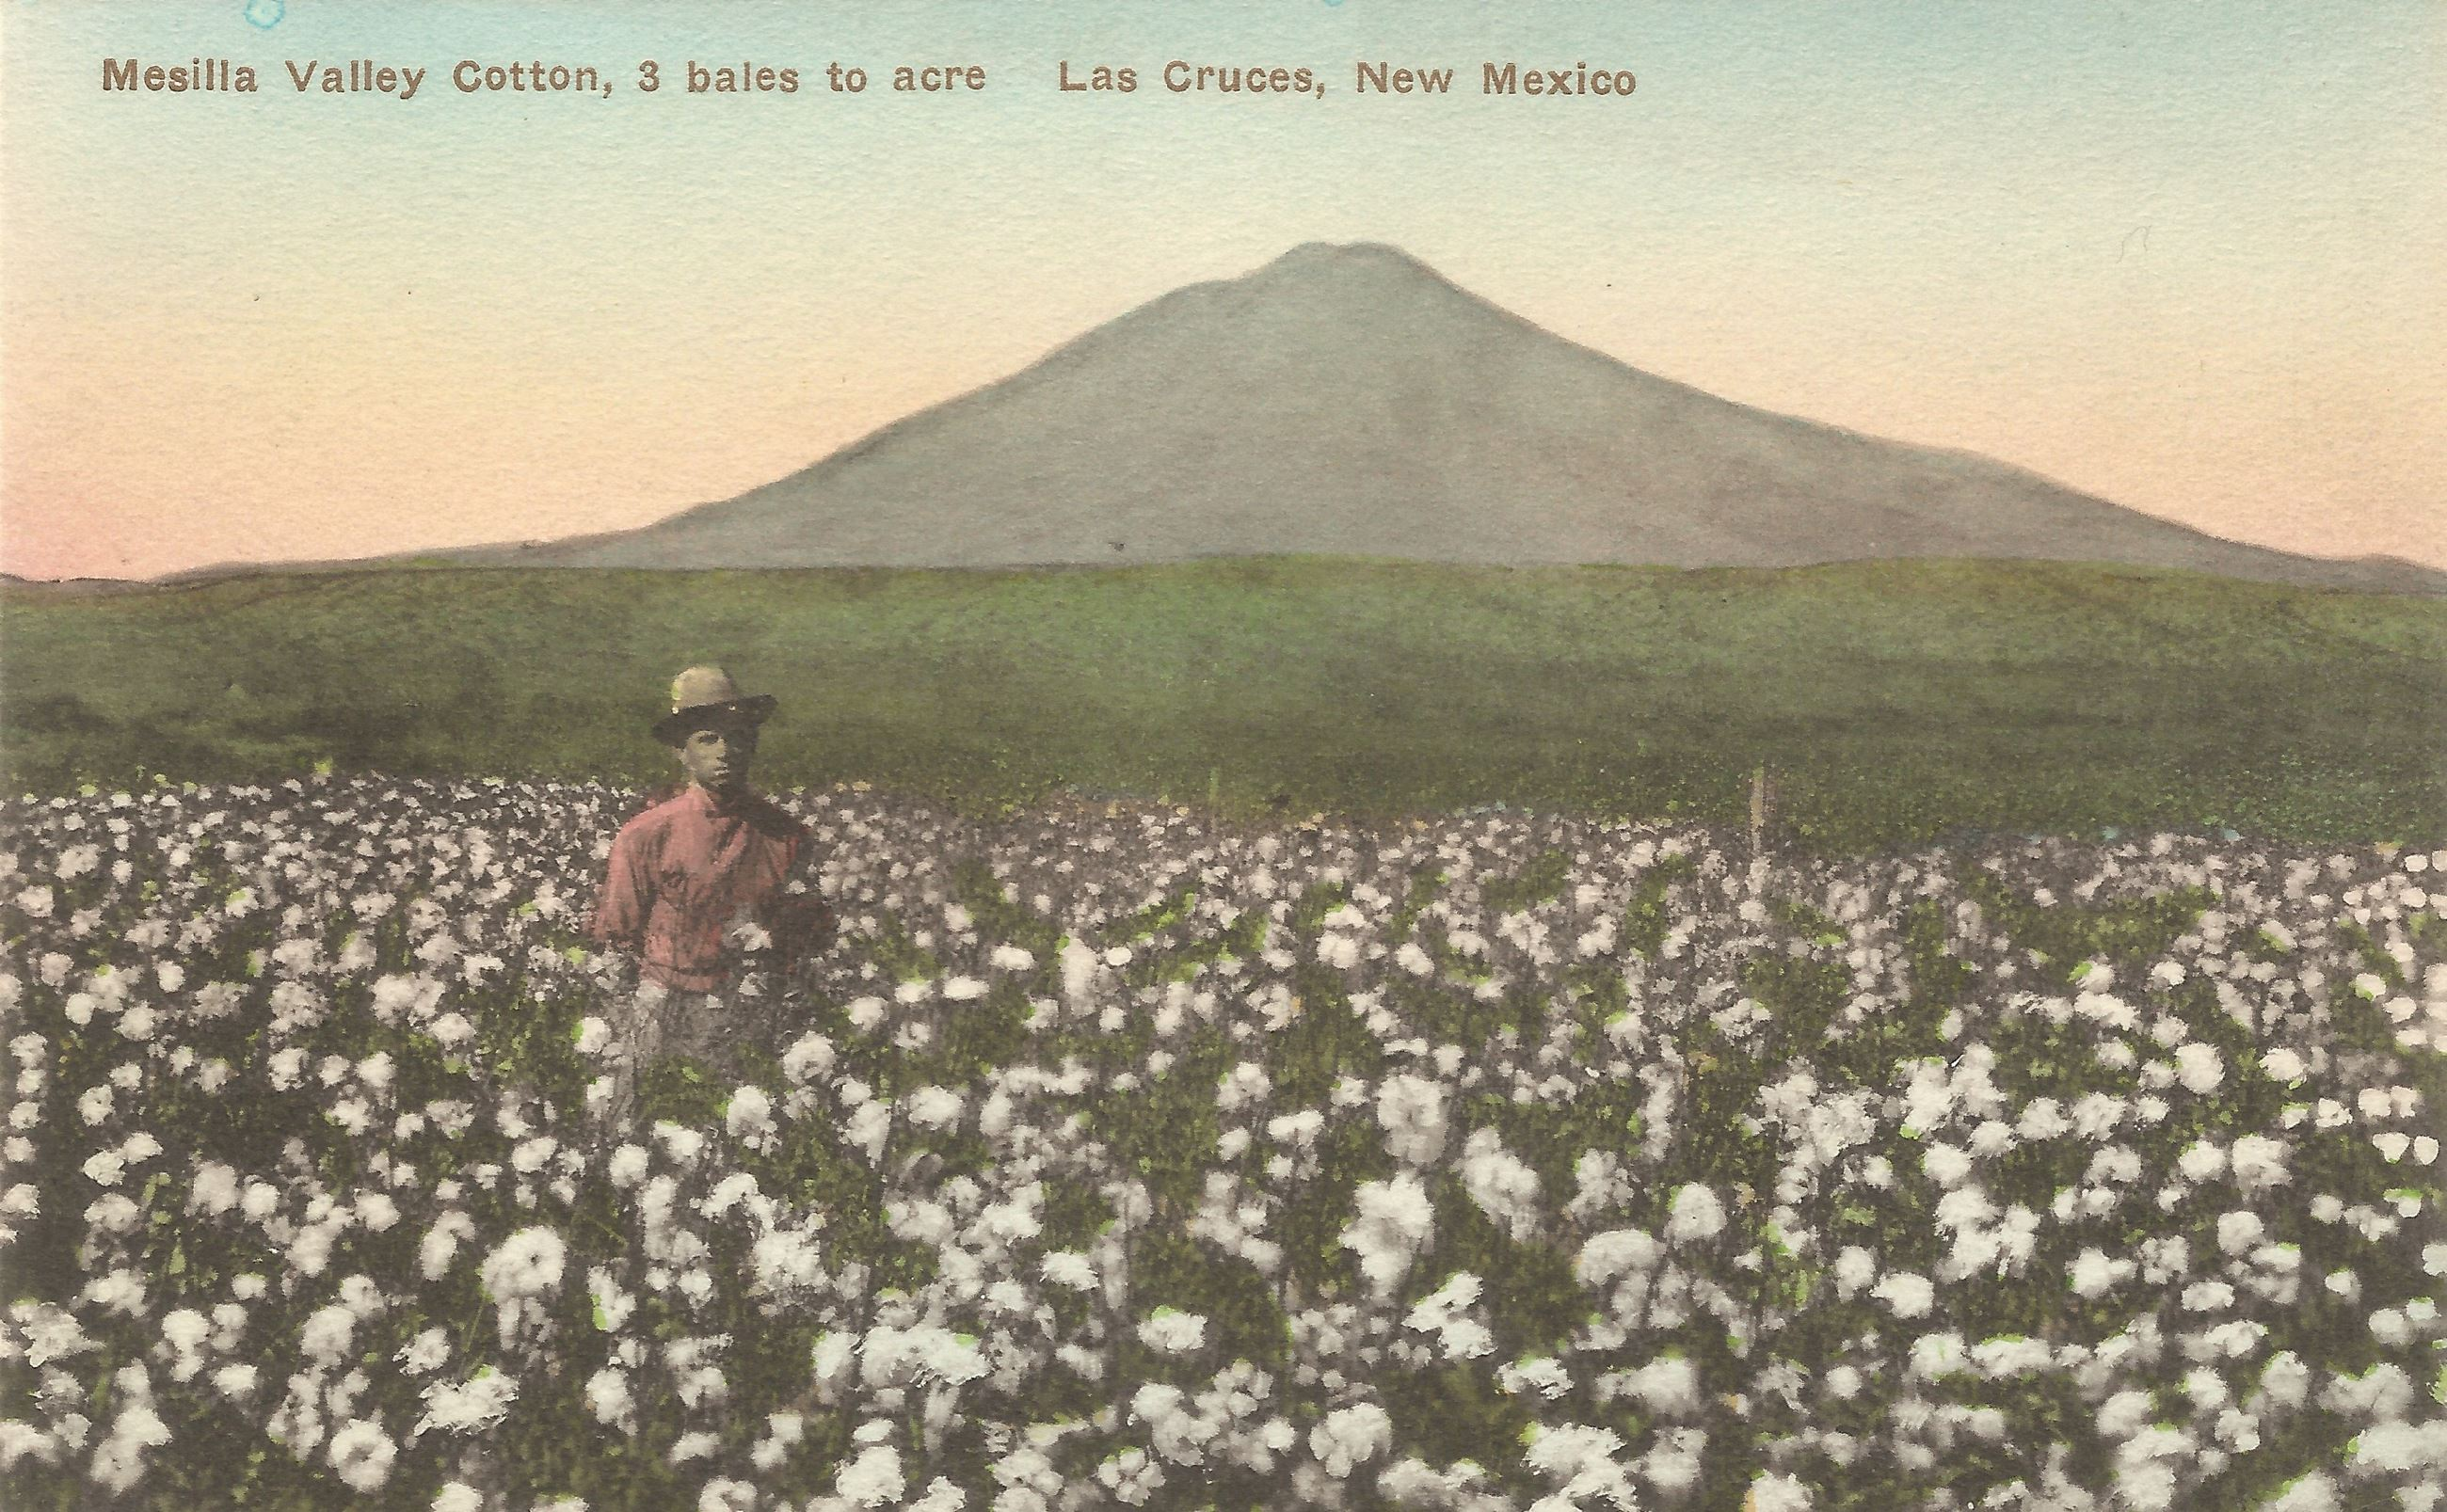 6. Cotton field with Picacho Peak